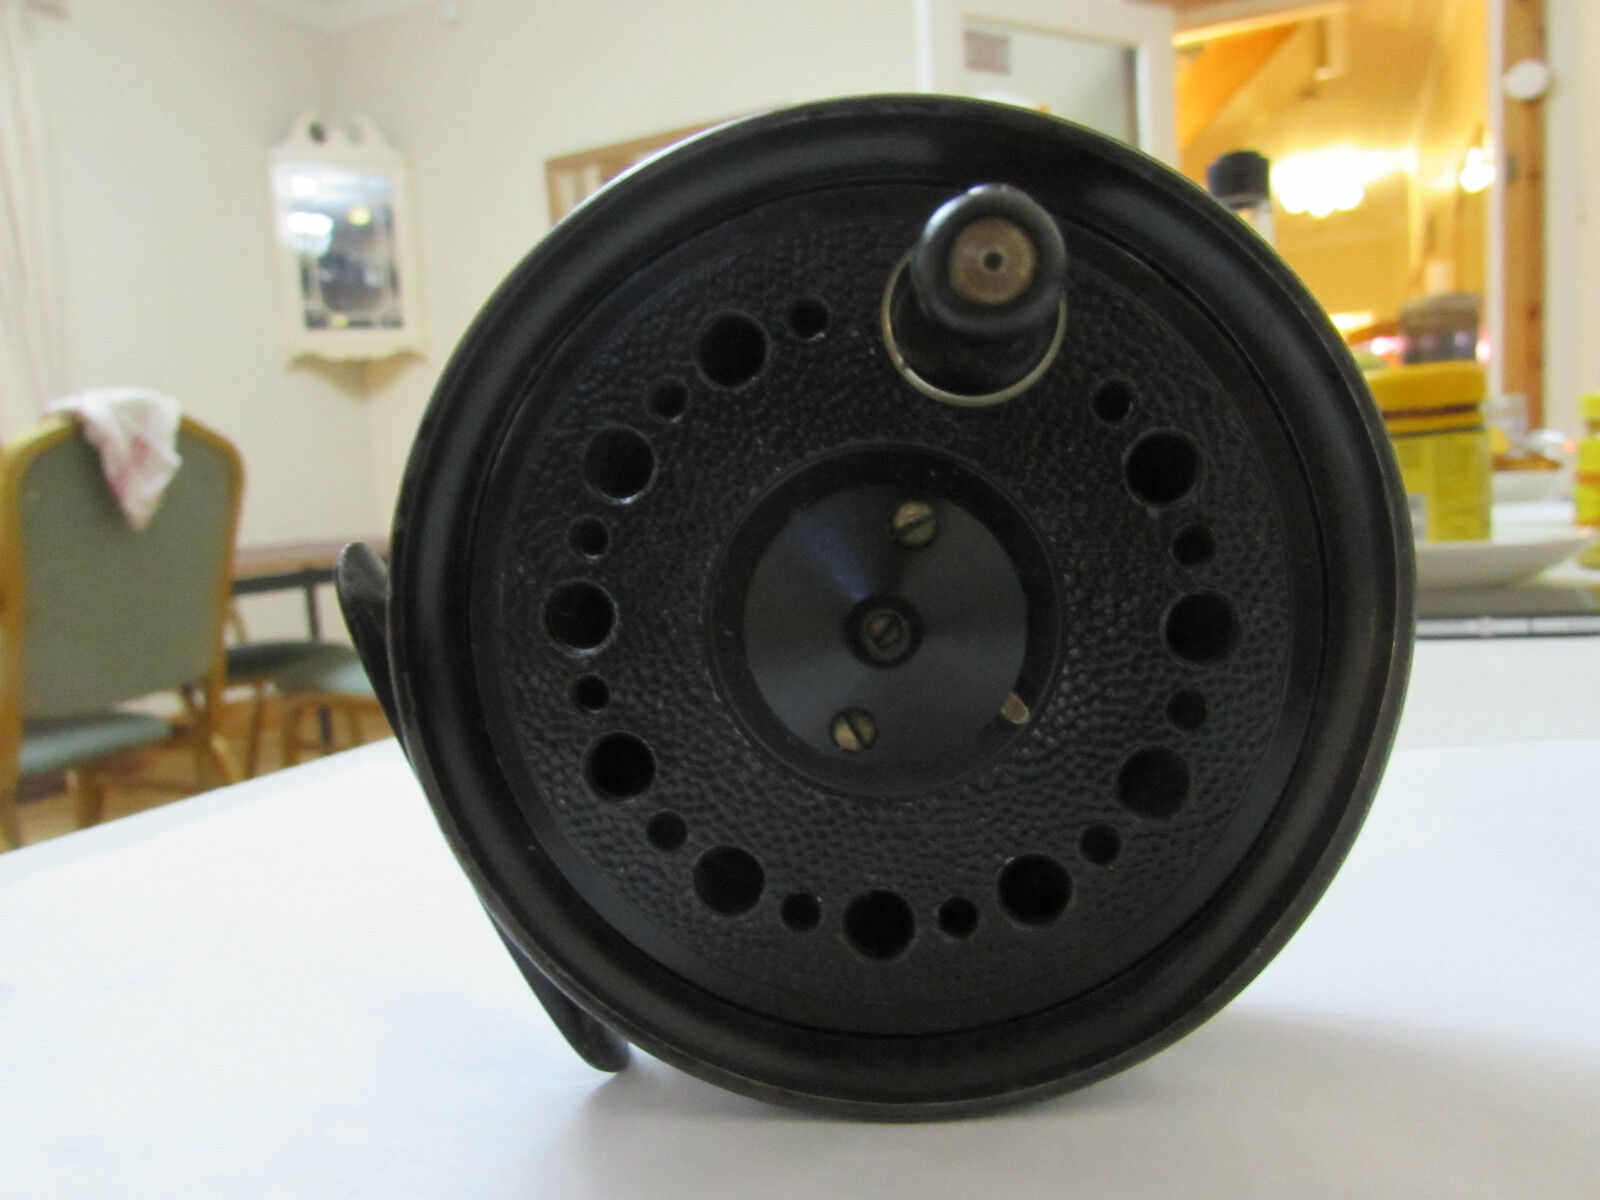 V good vintage youngs early beaudex trout fly fishing reel 3.5  + lineguard ..\